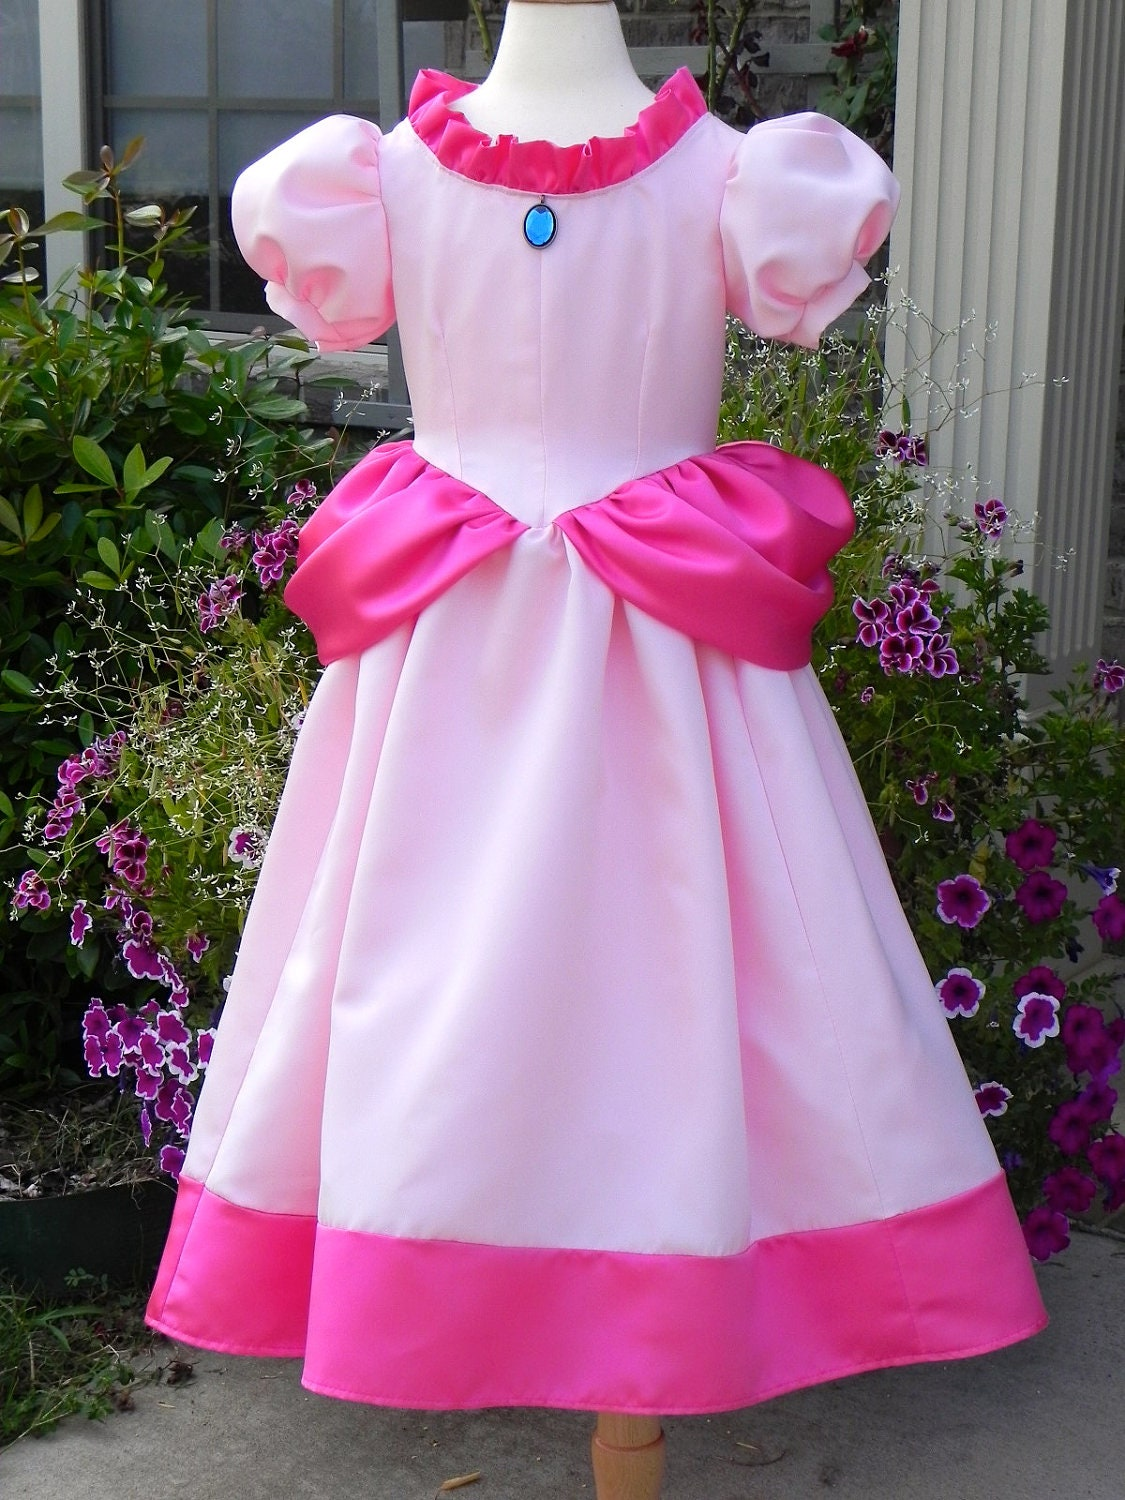 Items Similar To Princess Peach Costume Ball Gown From Super Mario Brothers. Toddler To Size 8 ...